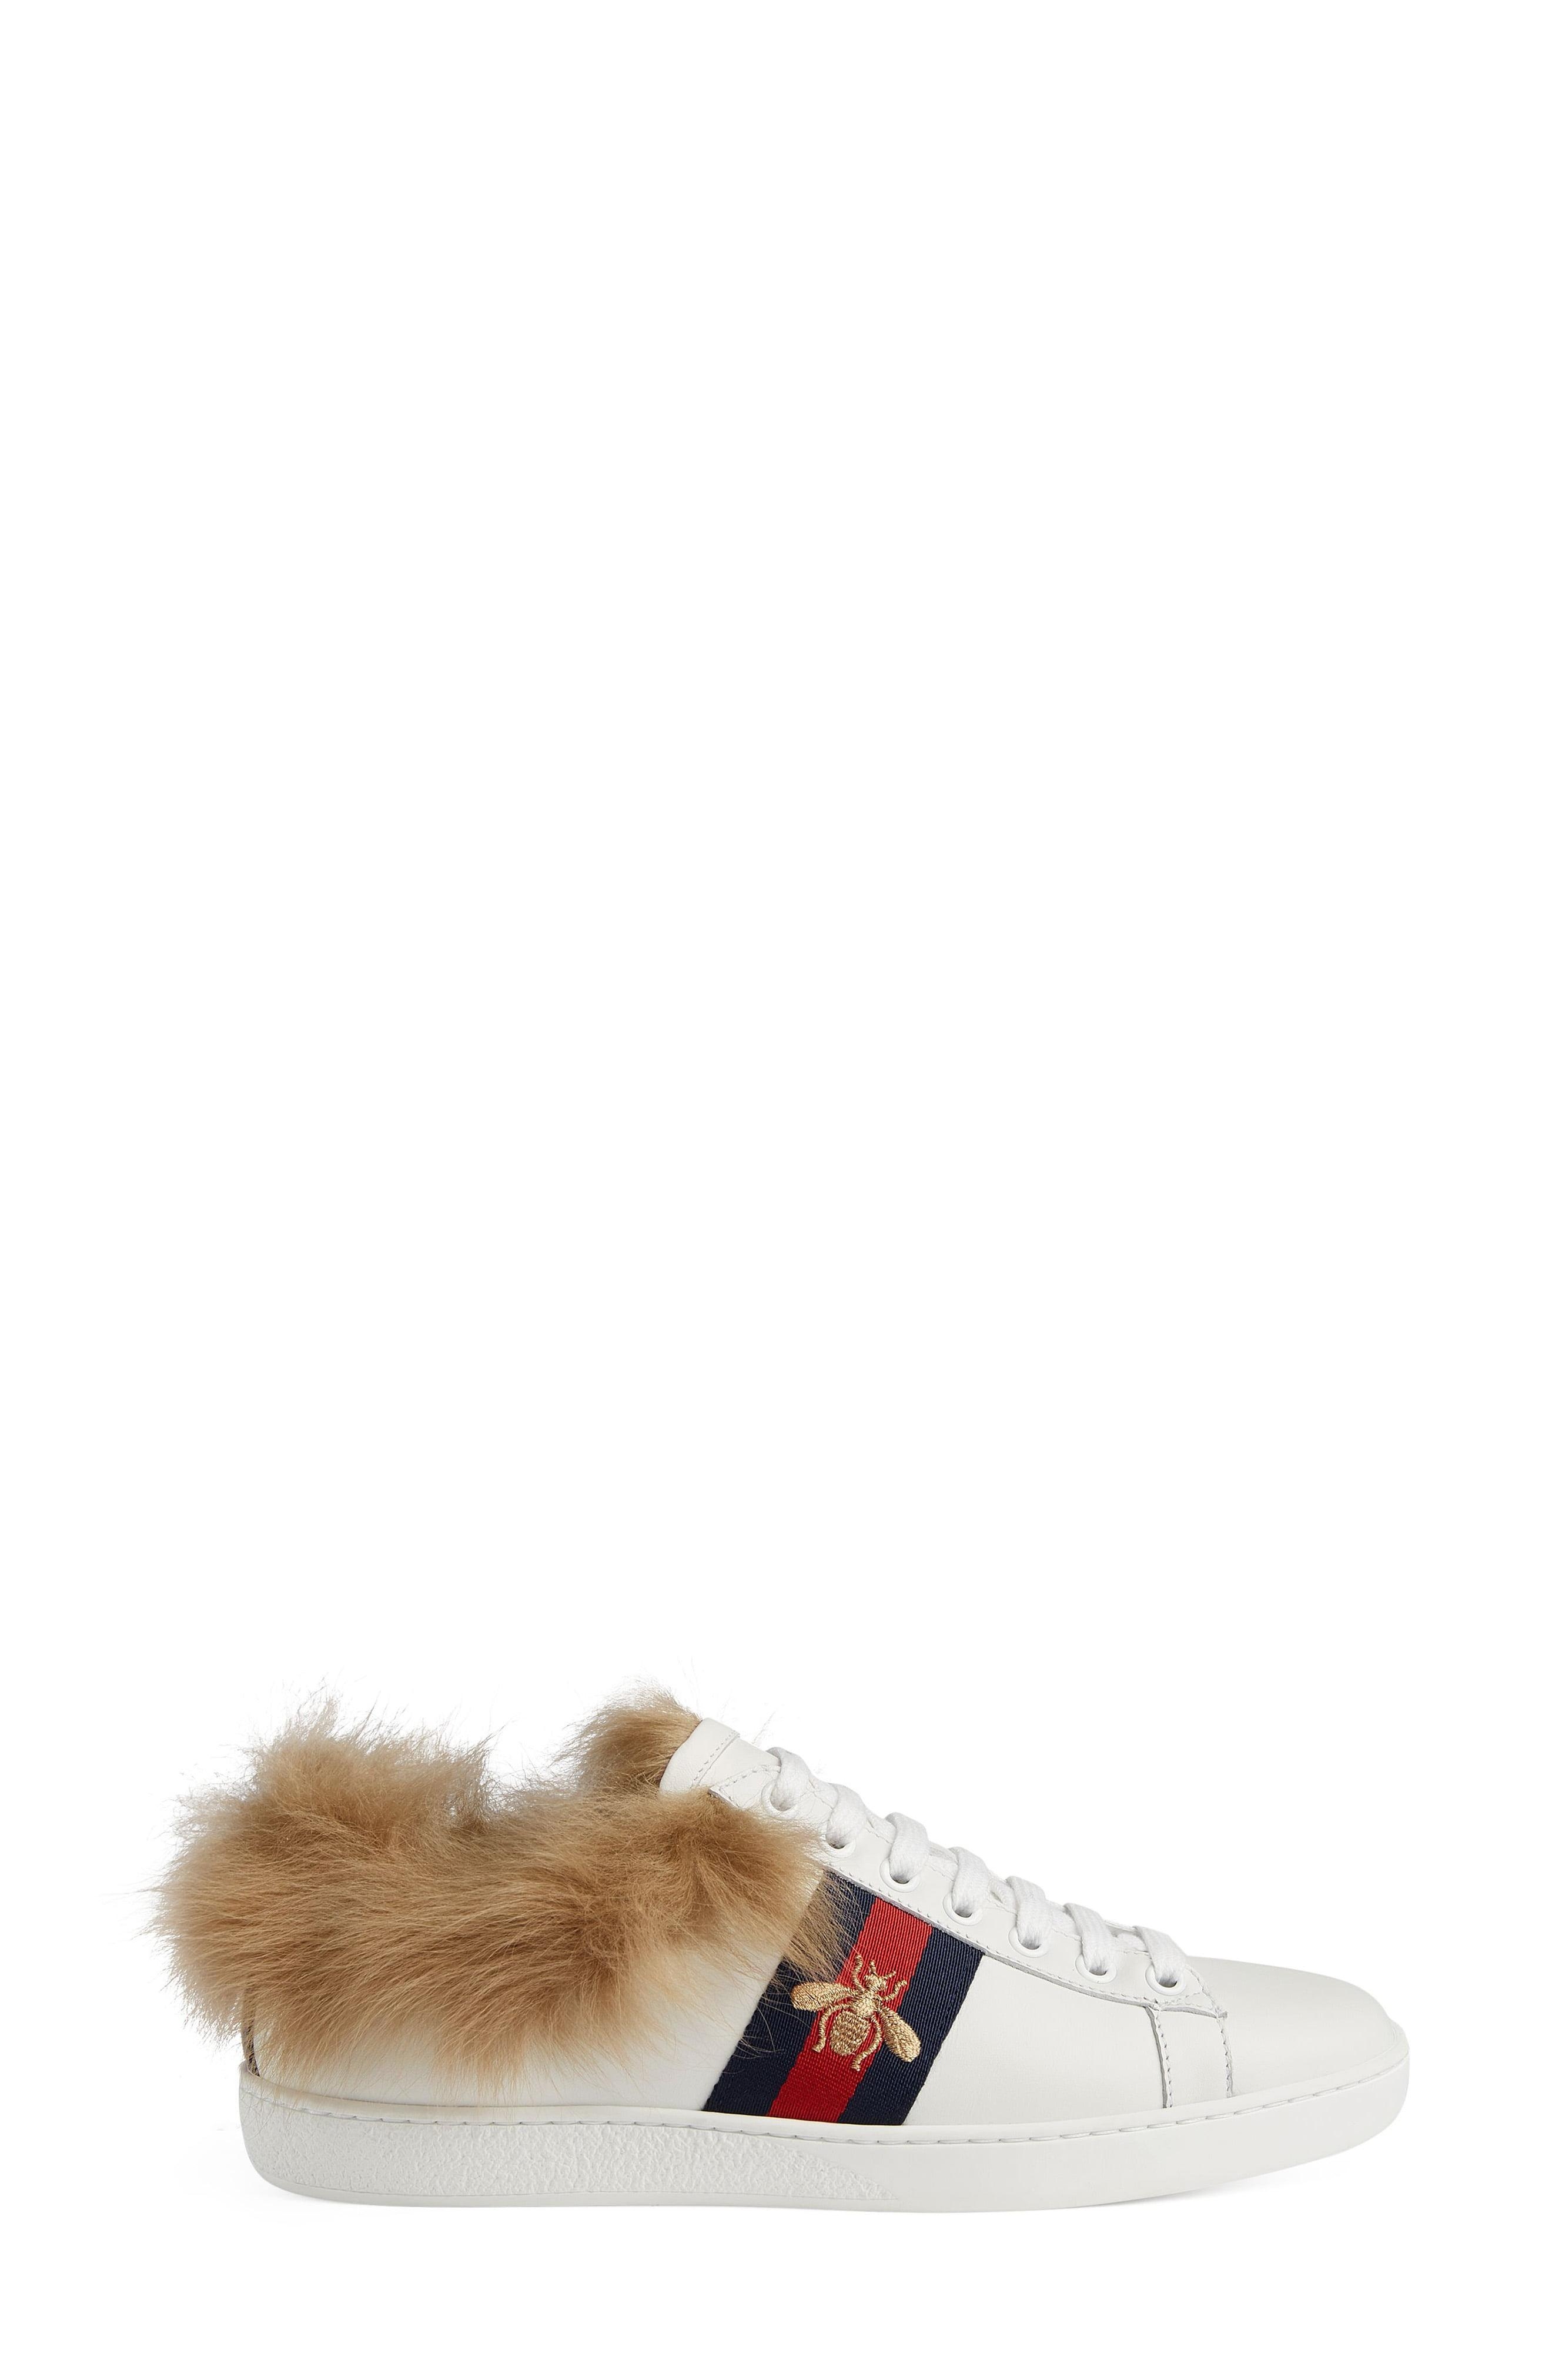 3920d769146 Gucci - White New Ace Genuine Shearling Lining Sneaker - Lyst. View  fullscreen